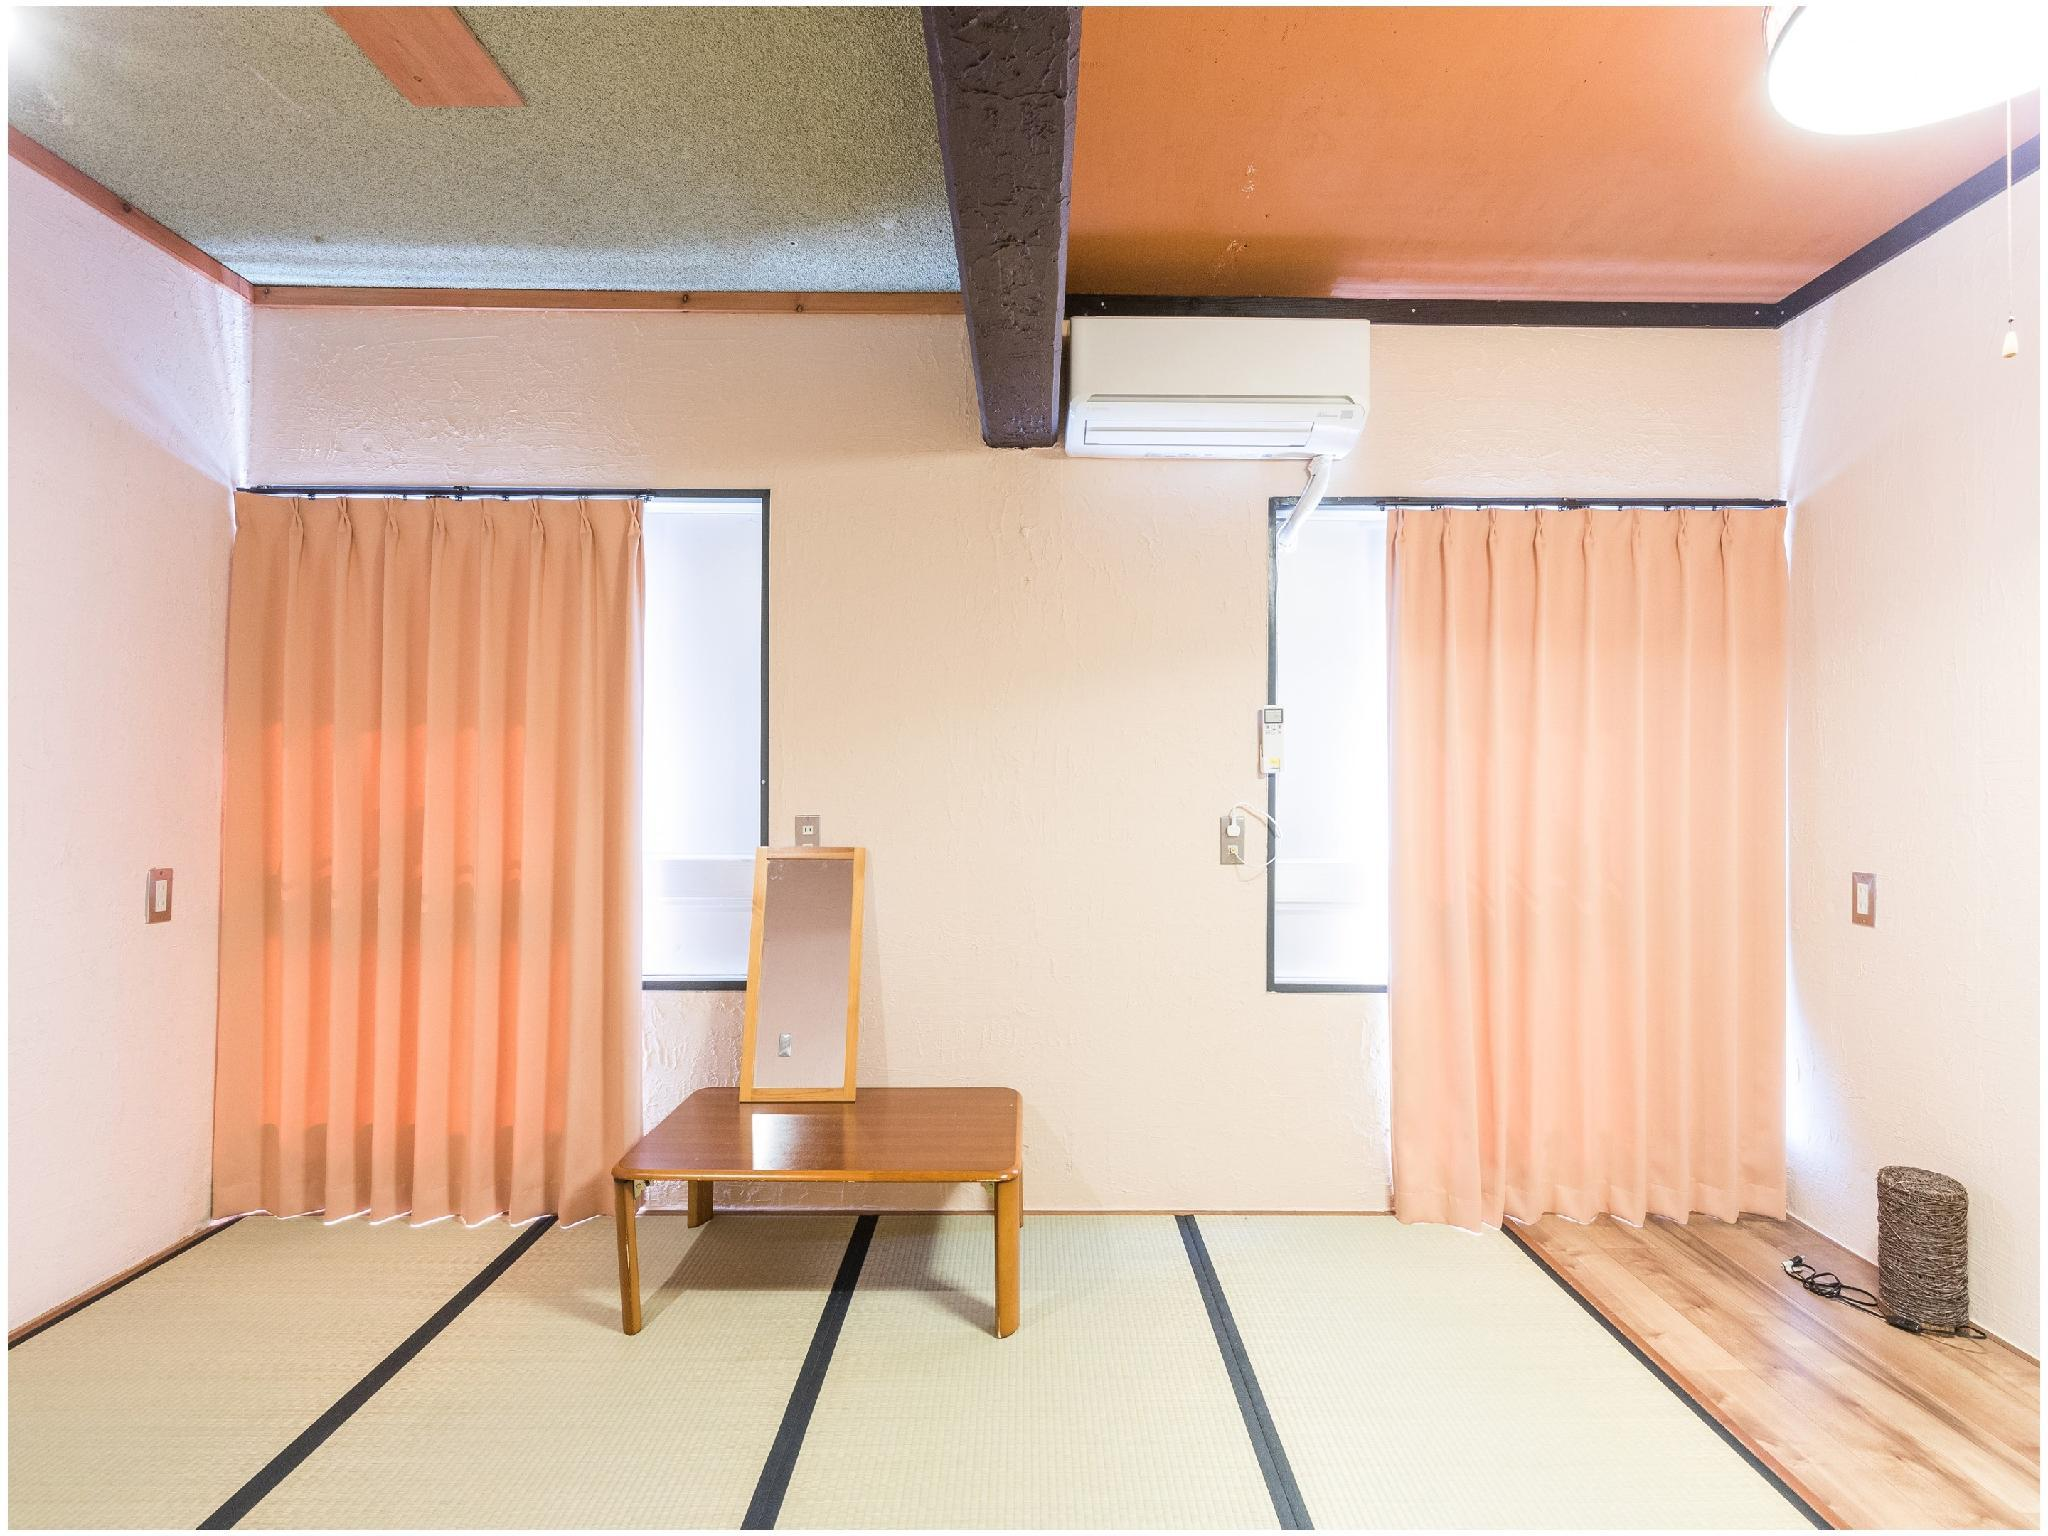 和式房 ※不占床学龄前儿童免费 (Japanese-style Room *Free bed sharing for children below elementary school age)